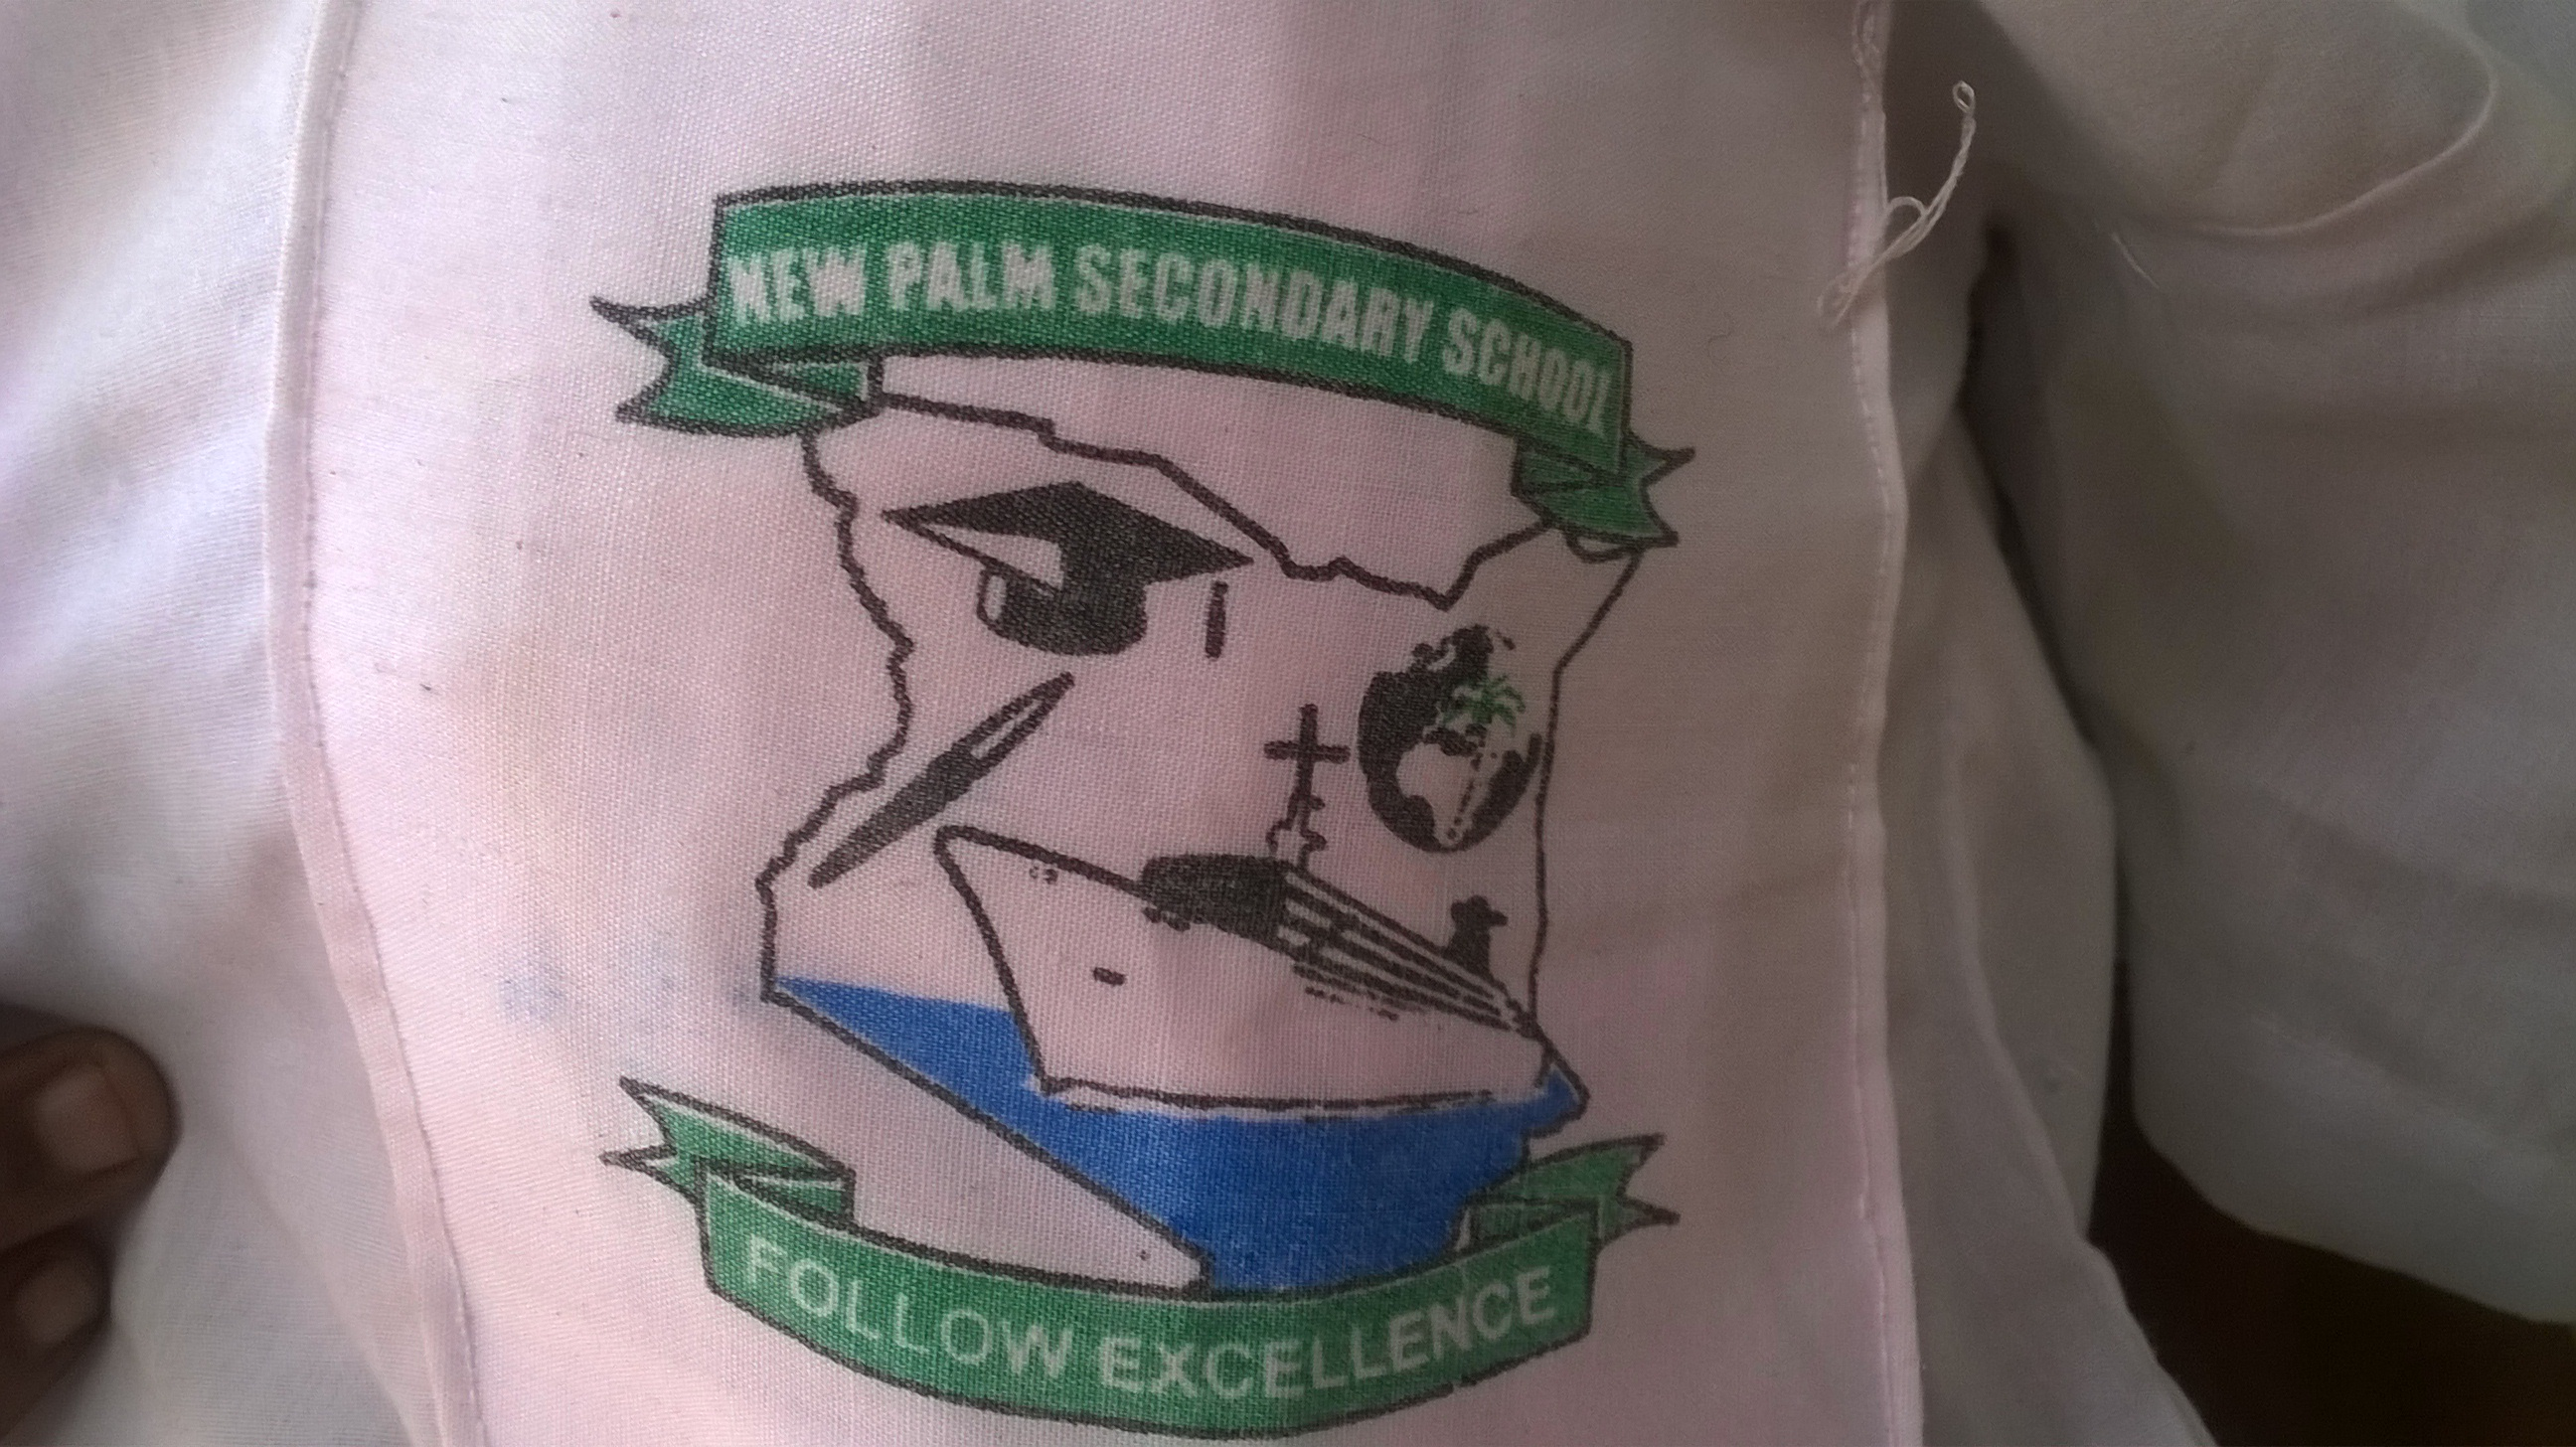 New Palms Secondary School logo